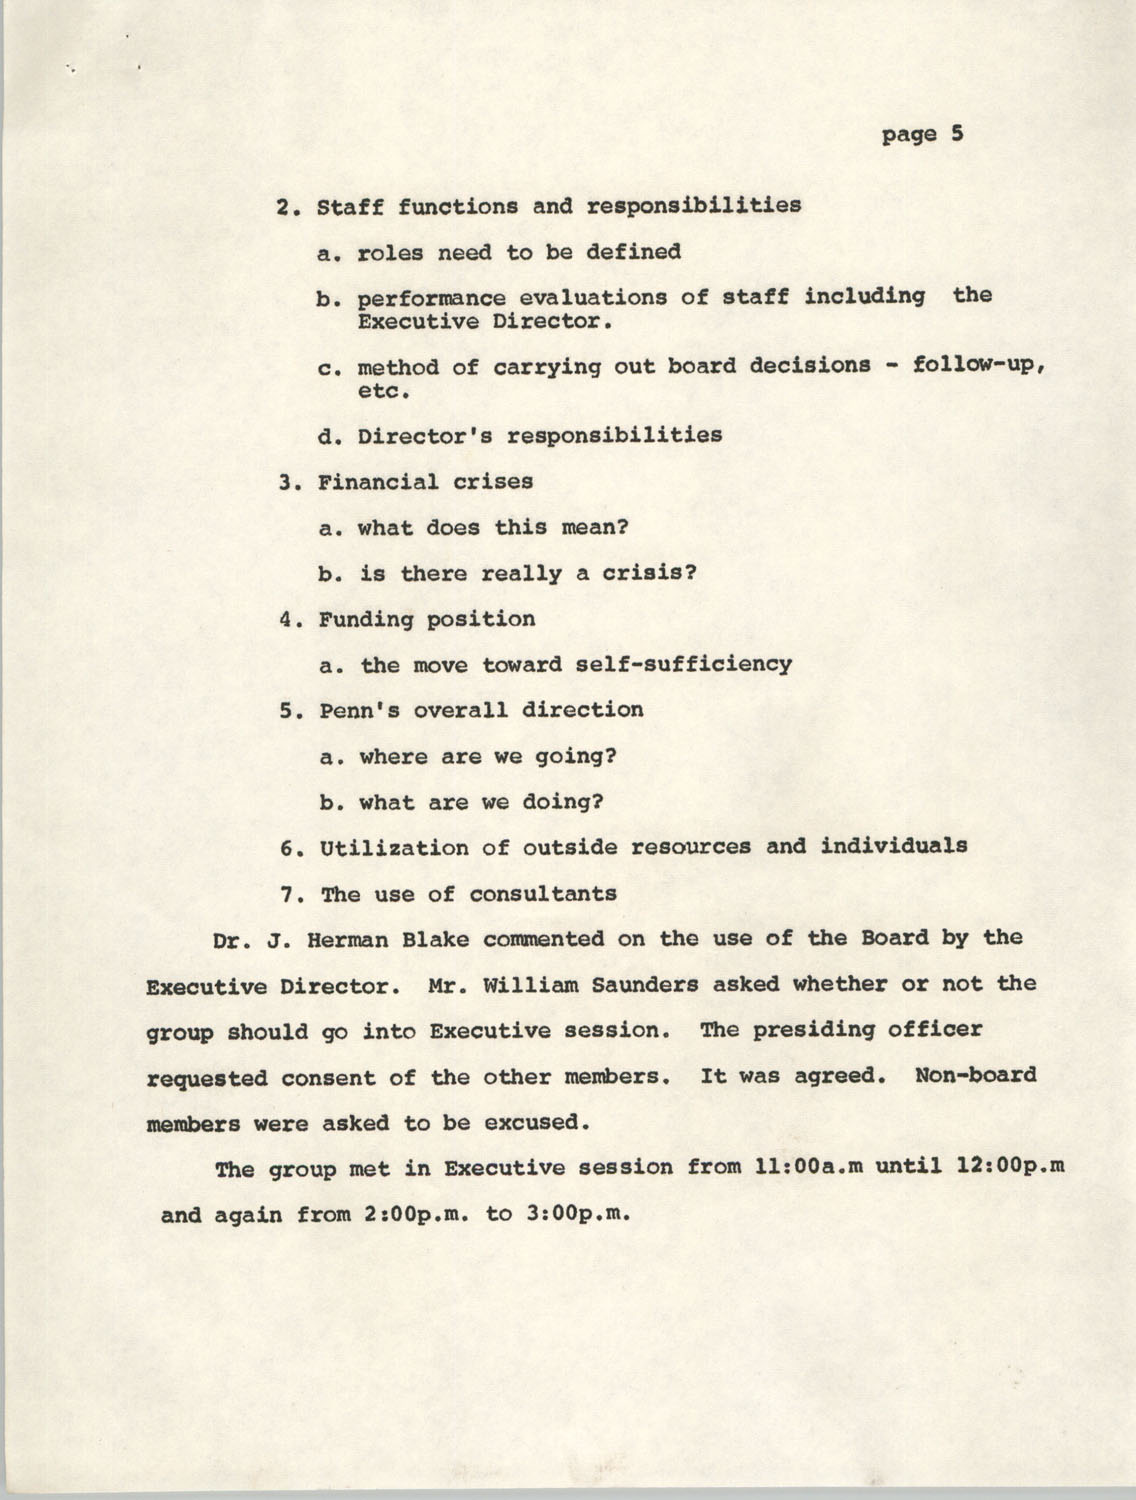 Minutes, Penn Community Services, August 17, 1974, Page 5